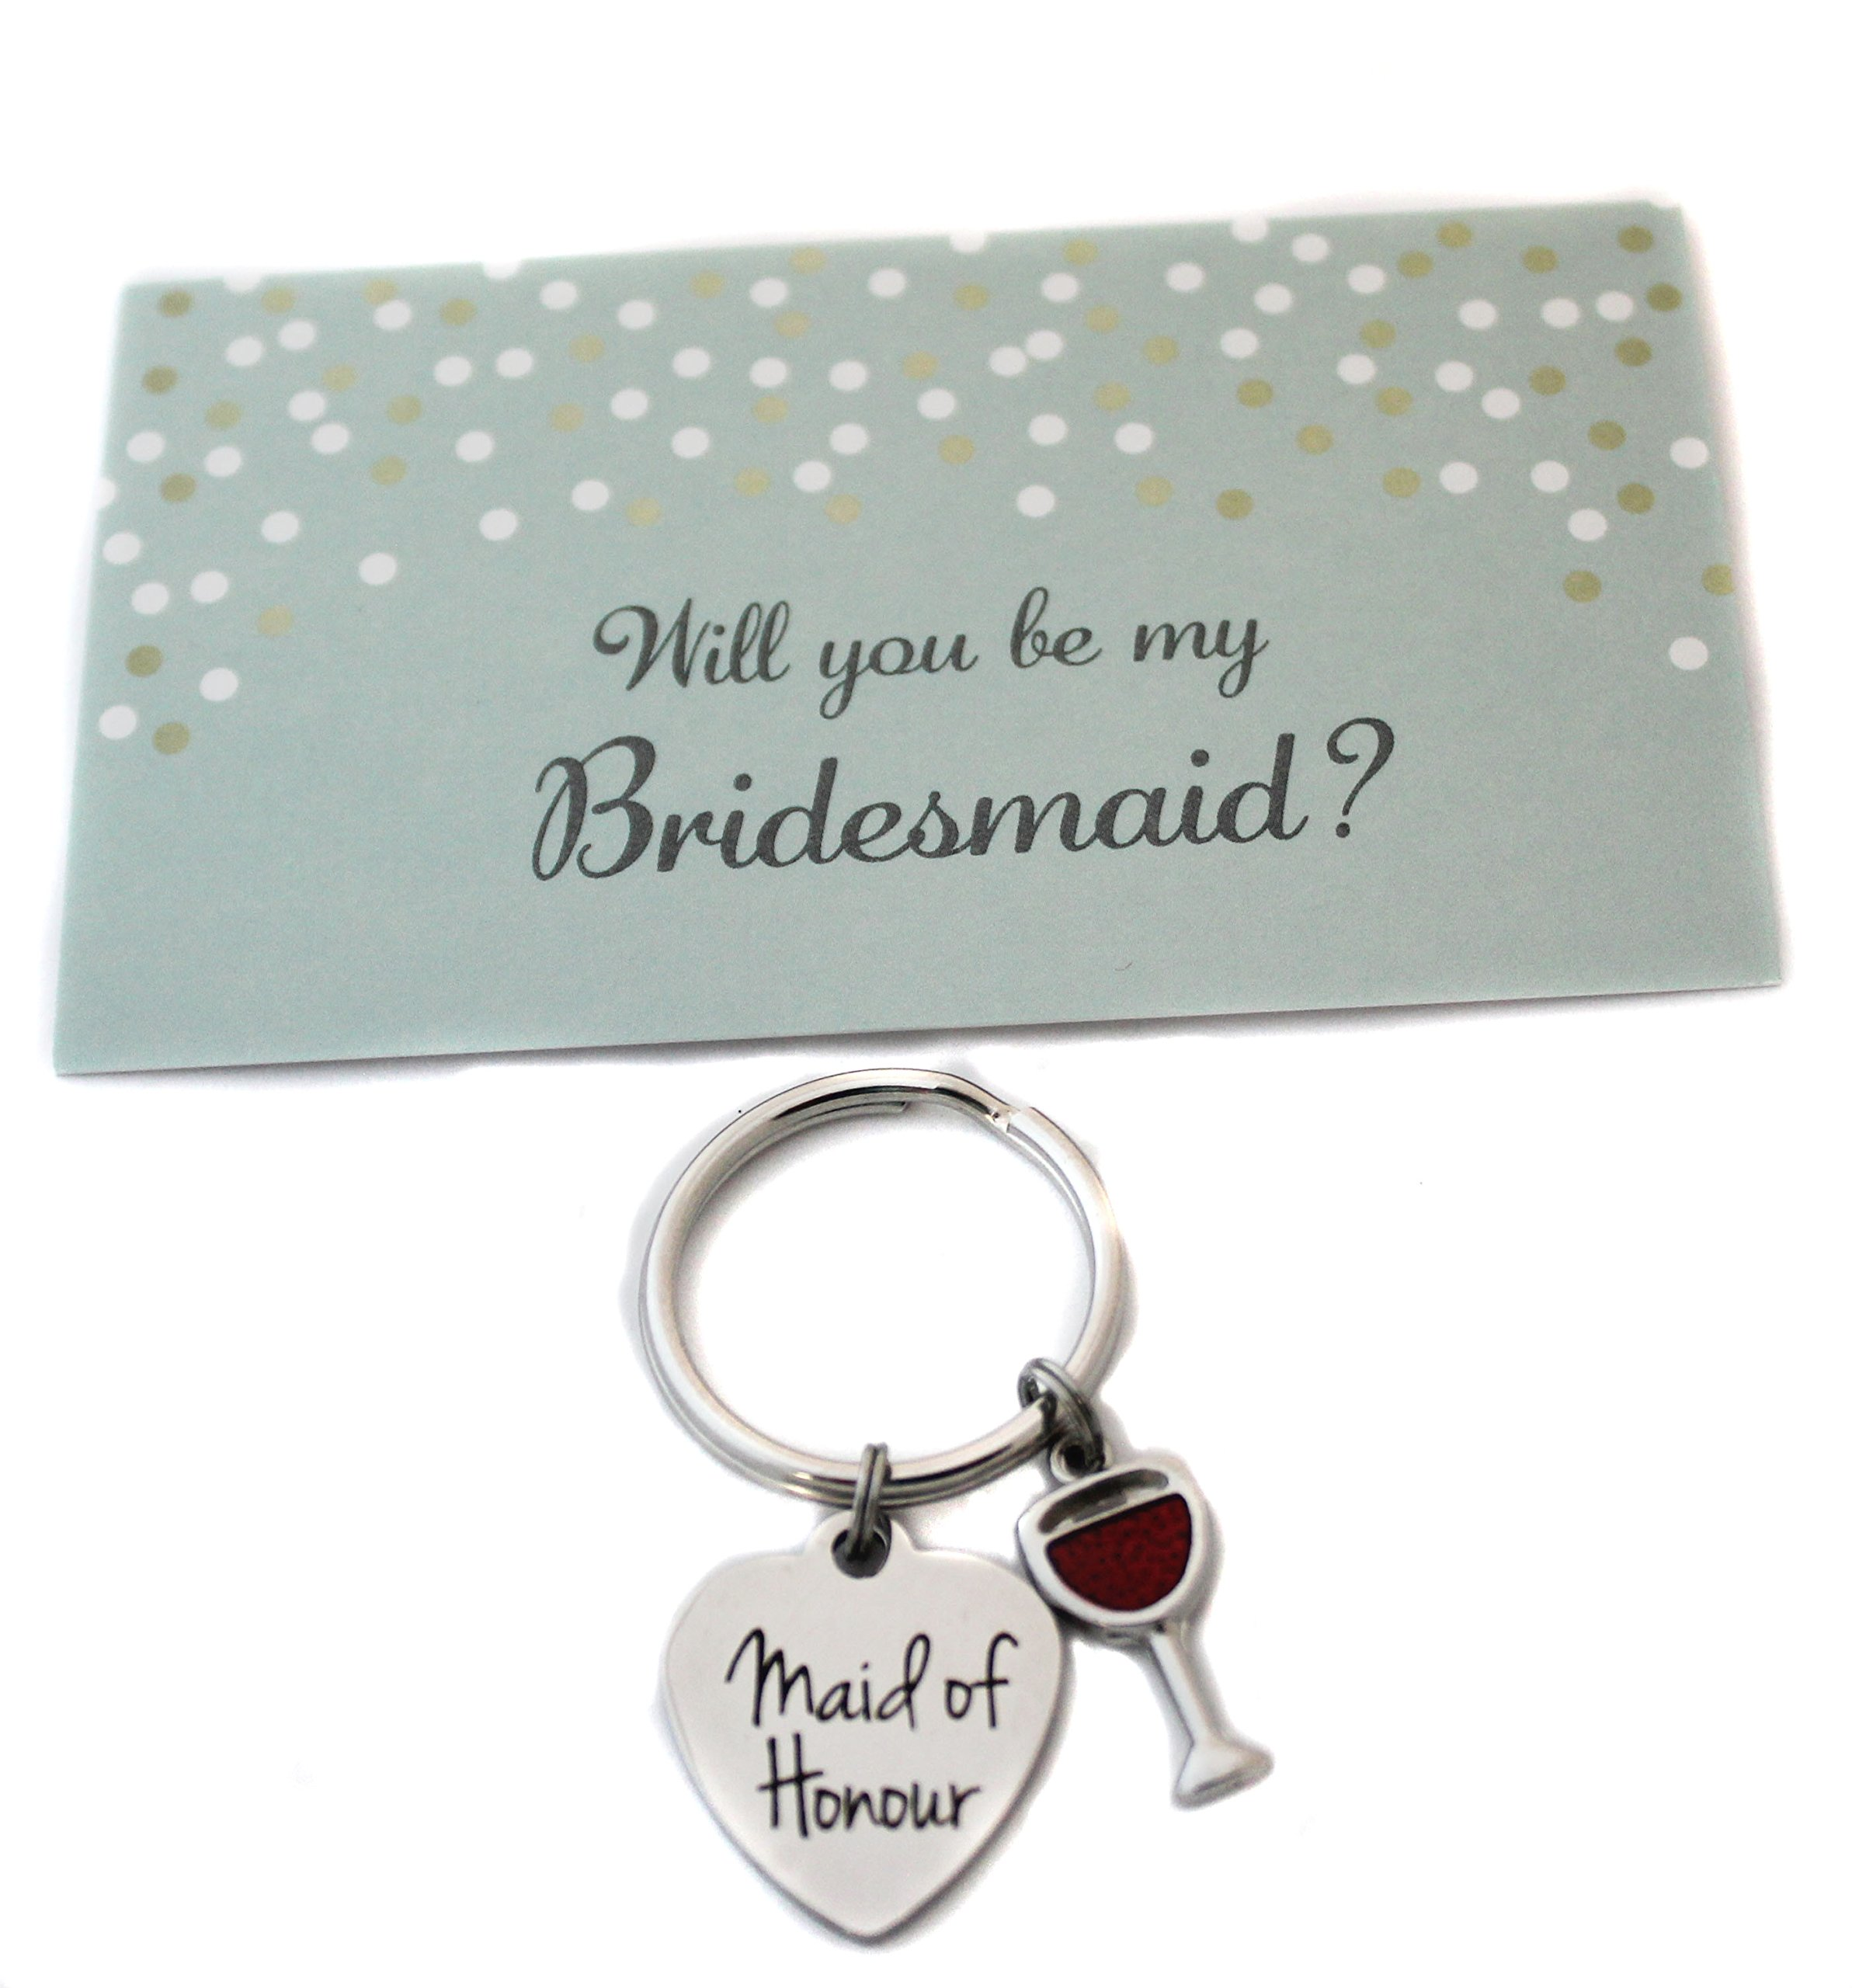 Heart Projects Stainless Steel Maid of Honour Wine Glass Charm Keychain Bag Charm Bridesmaid Proposal Gift